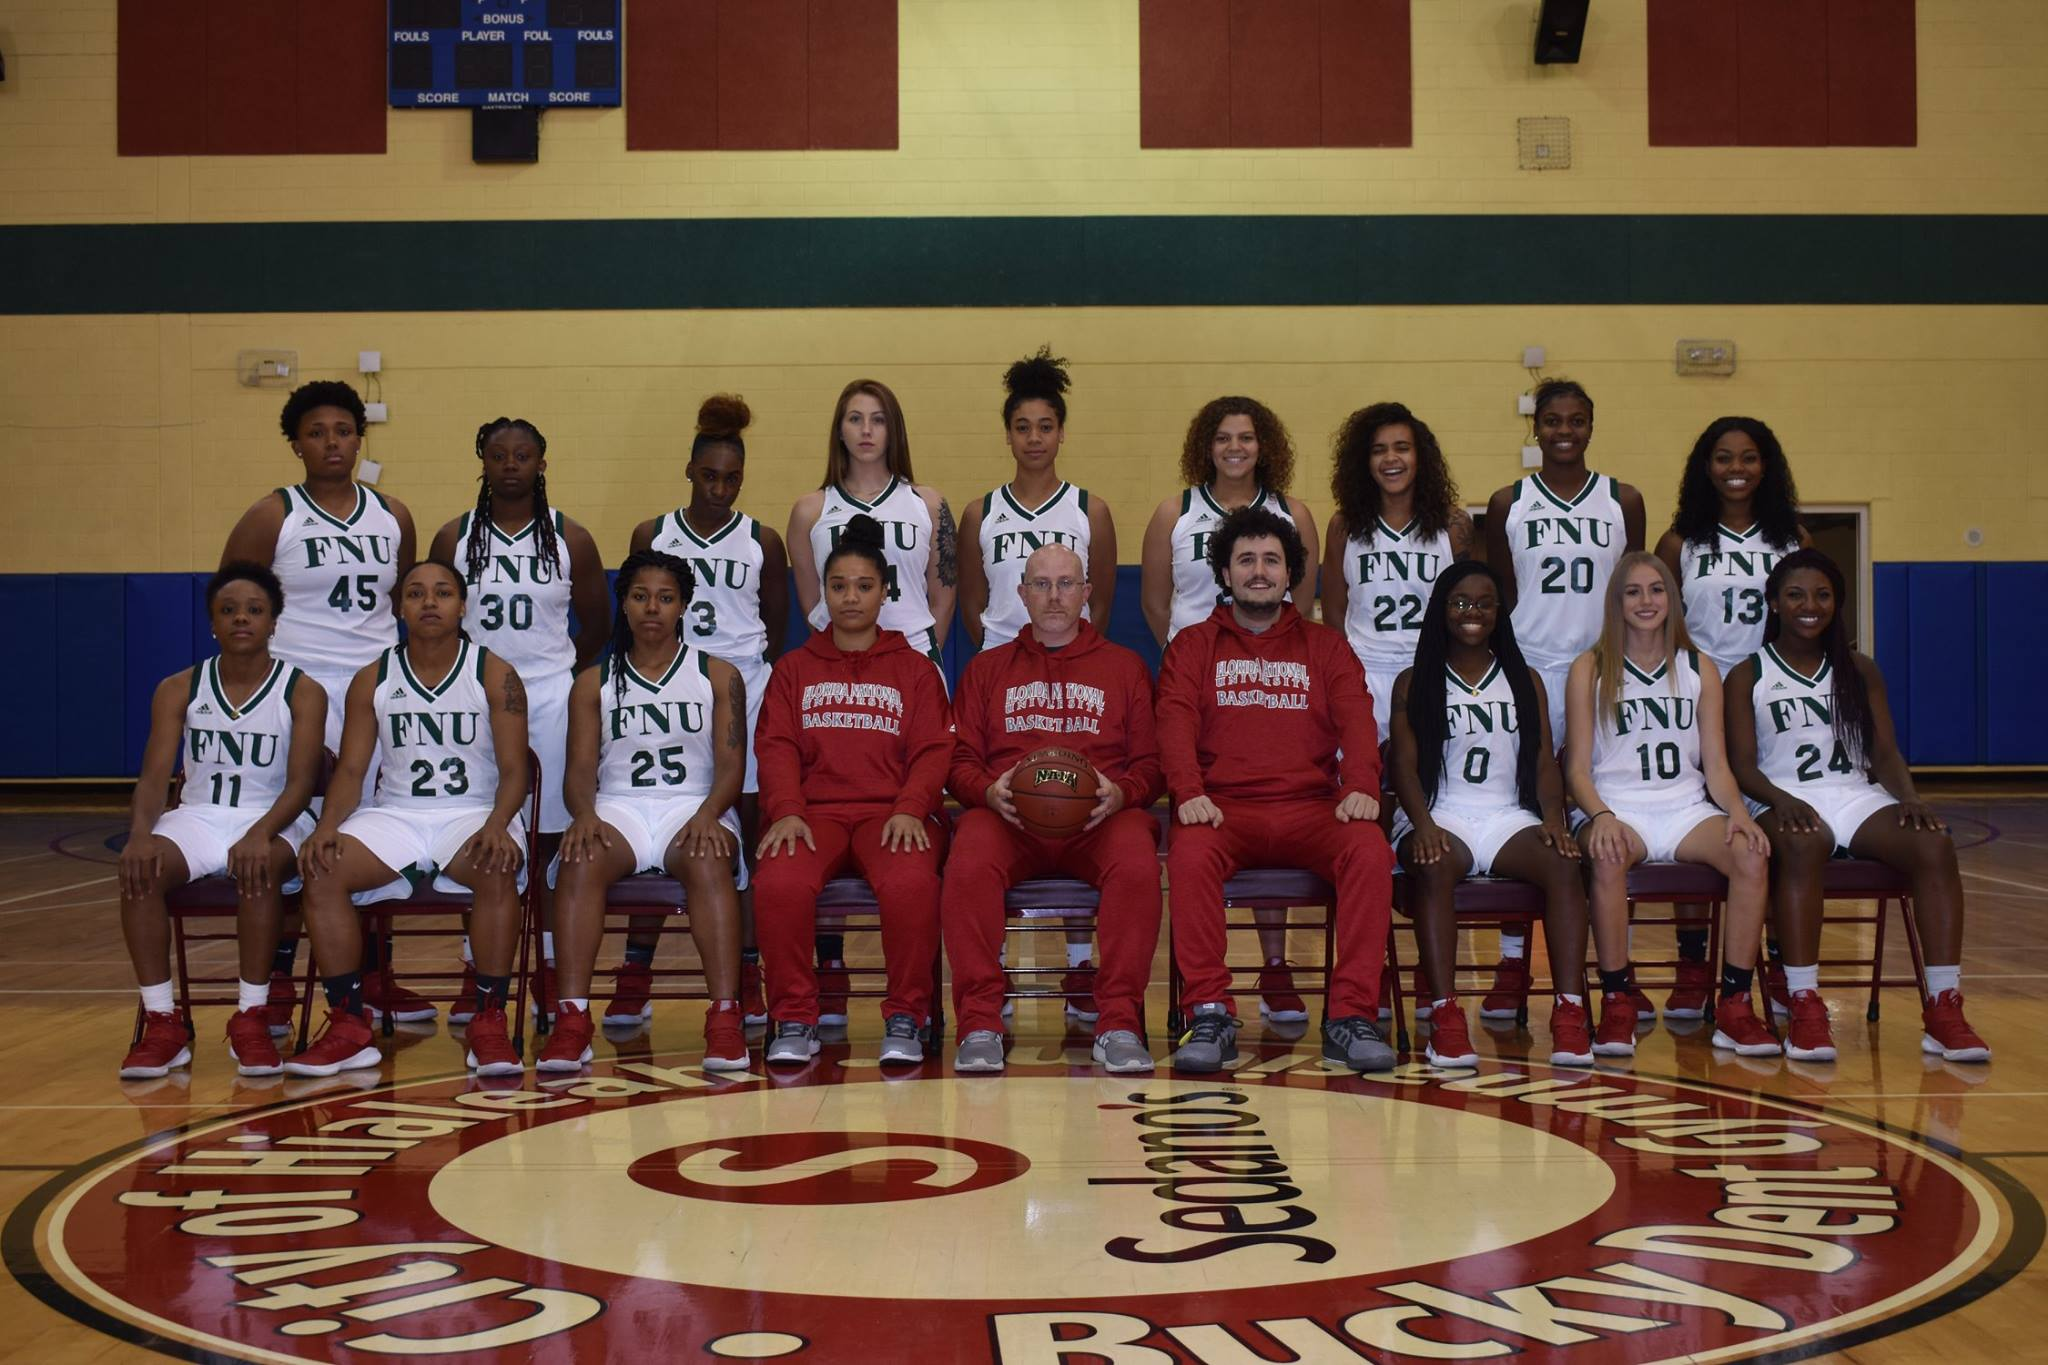 Women's Basketball Team Picture